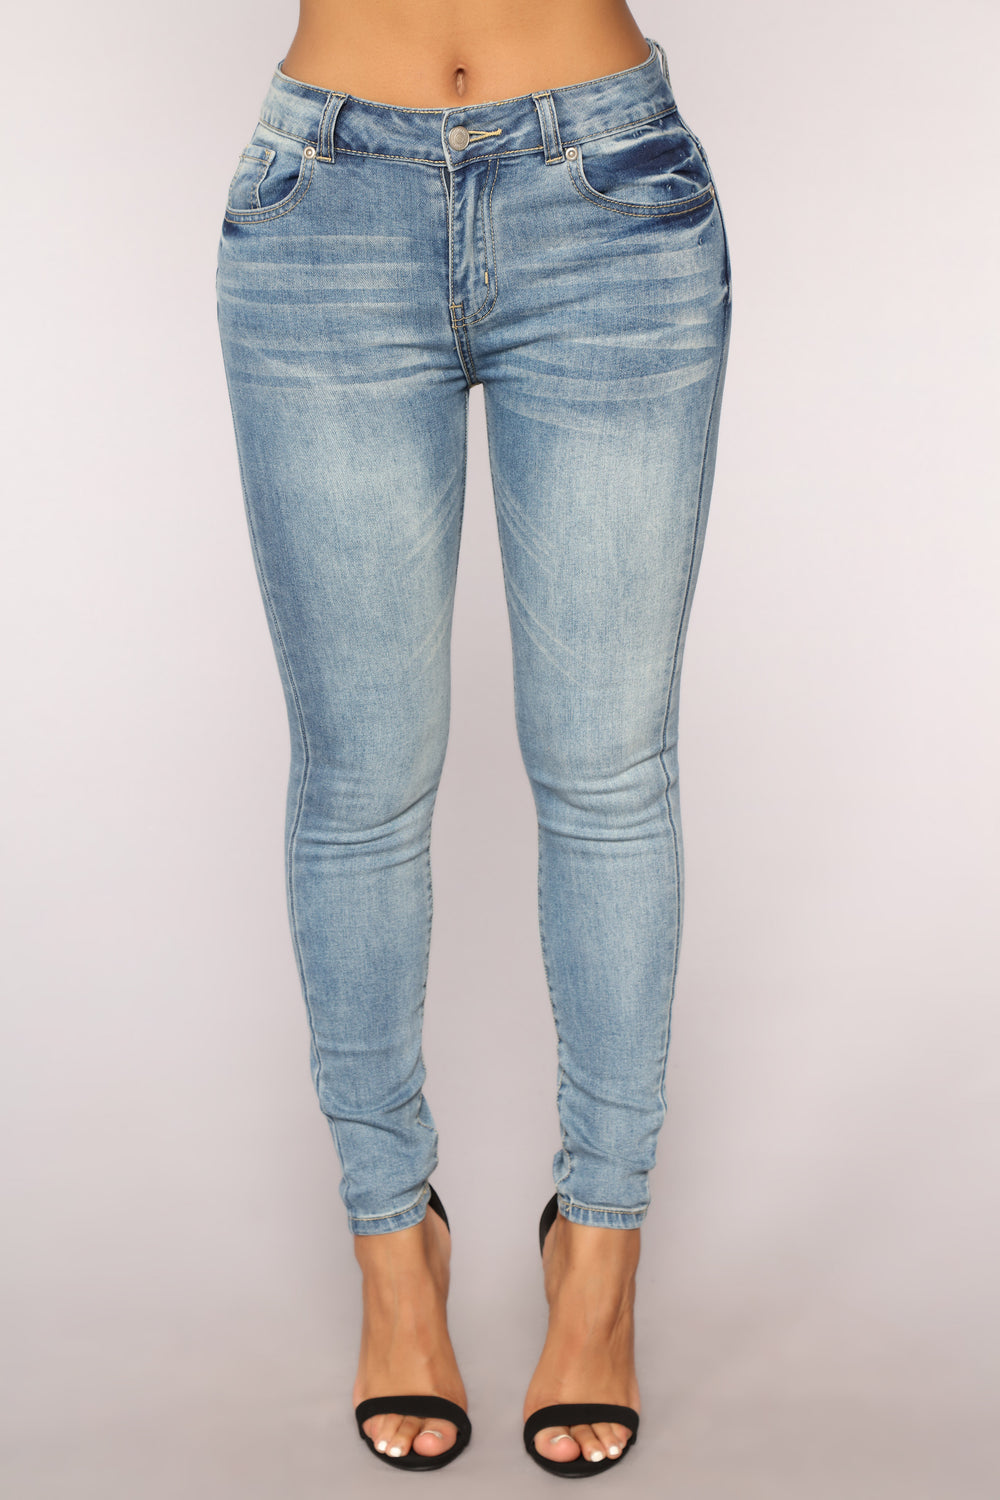 Constance High Rise Ankle Jeans - Medium Blue Wash